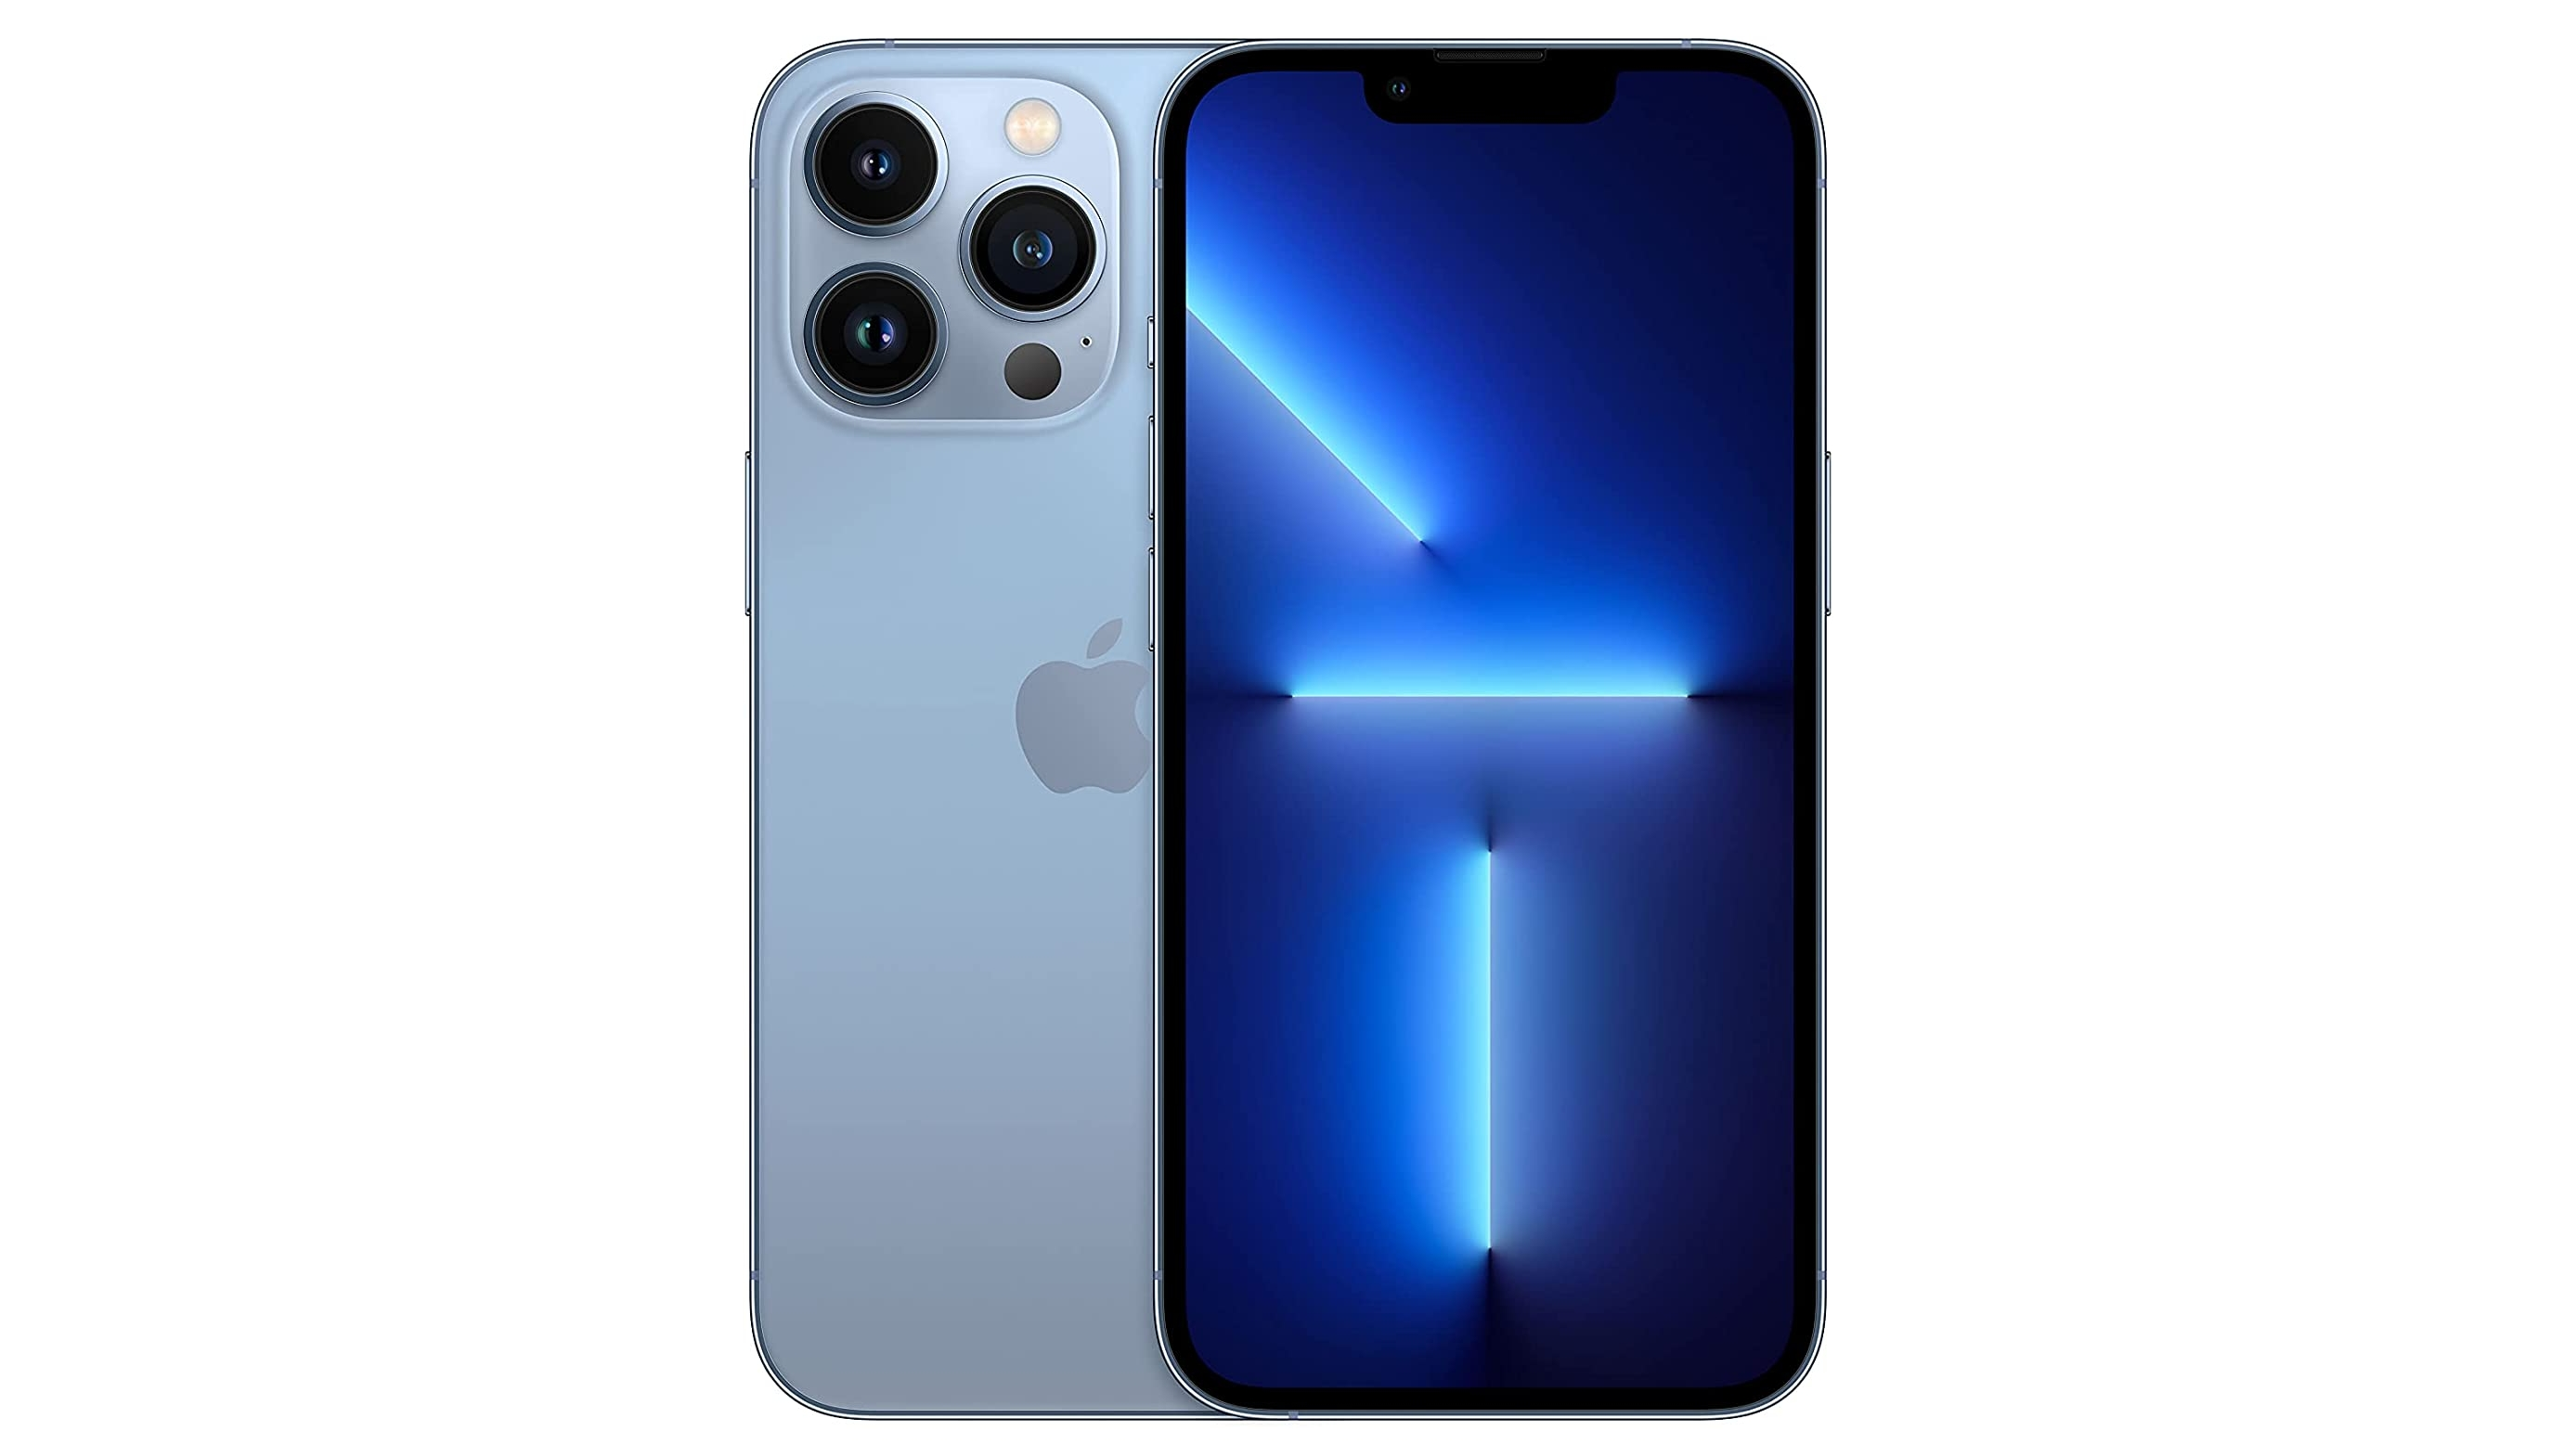 An iPhone 13 Pro in blue, against a white background